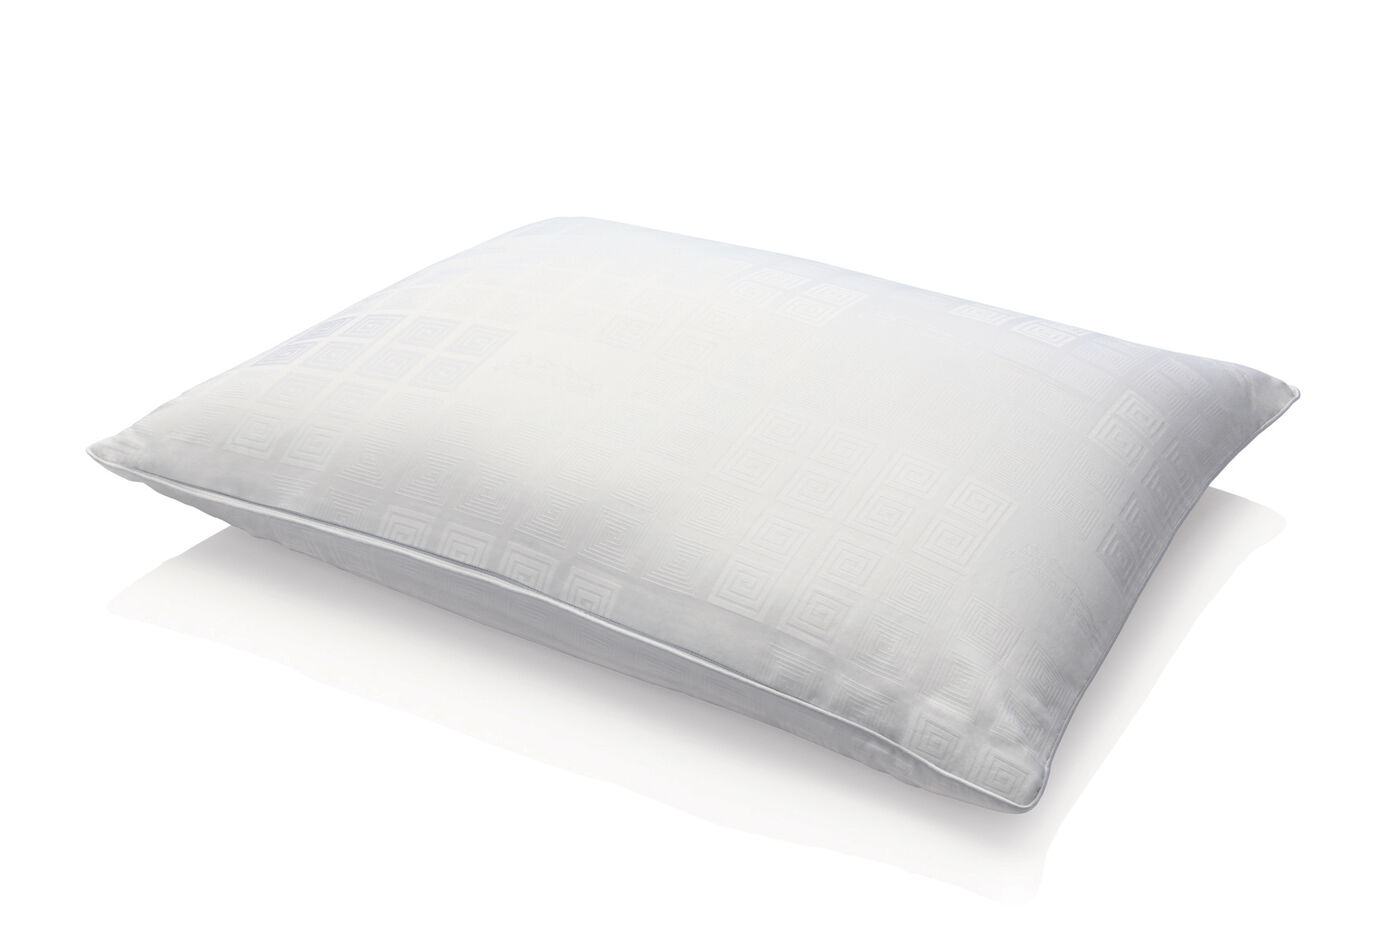 The Traditional Pillow By Tempur : Tempur-Pedic TEMPUR-Traditional Pillow Mathis Brothers Furniture